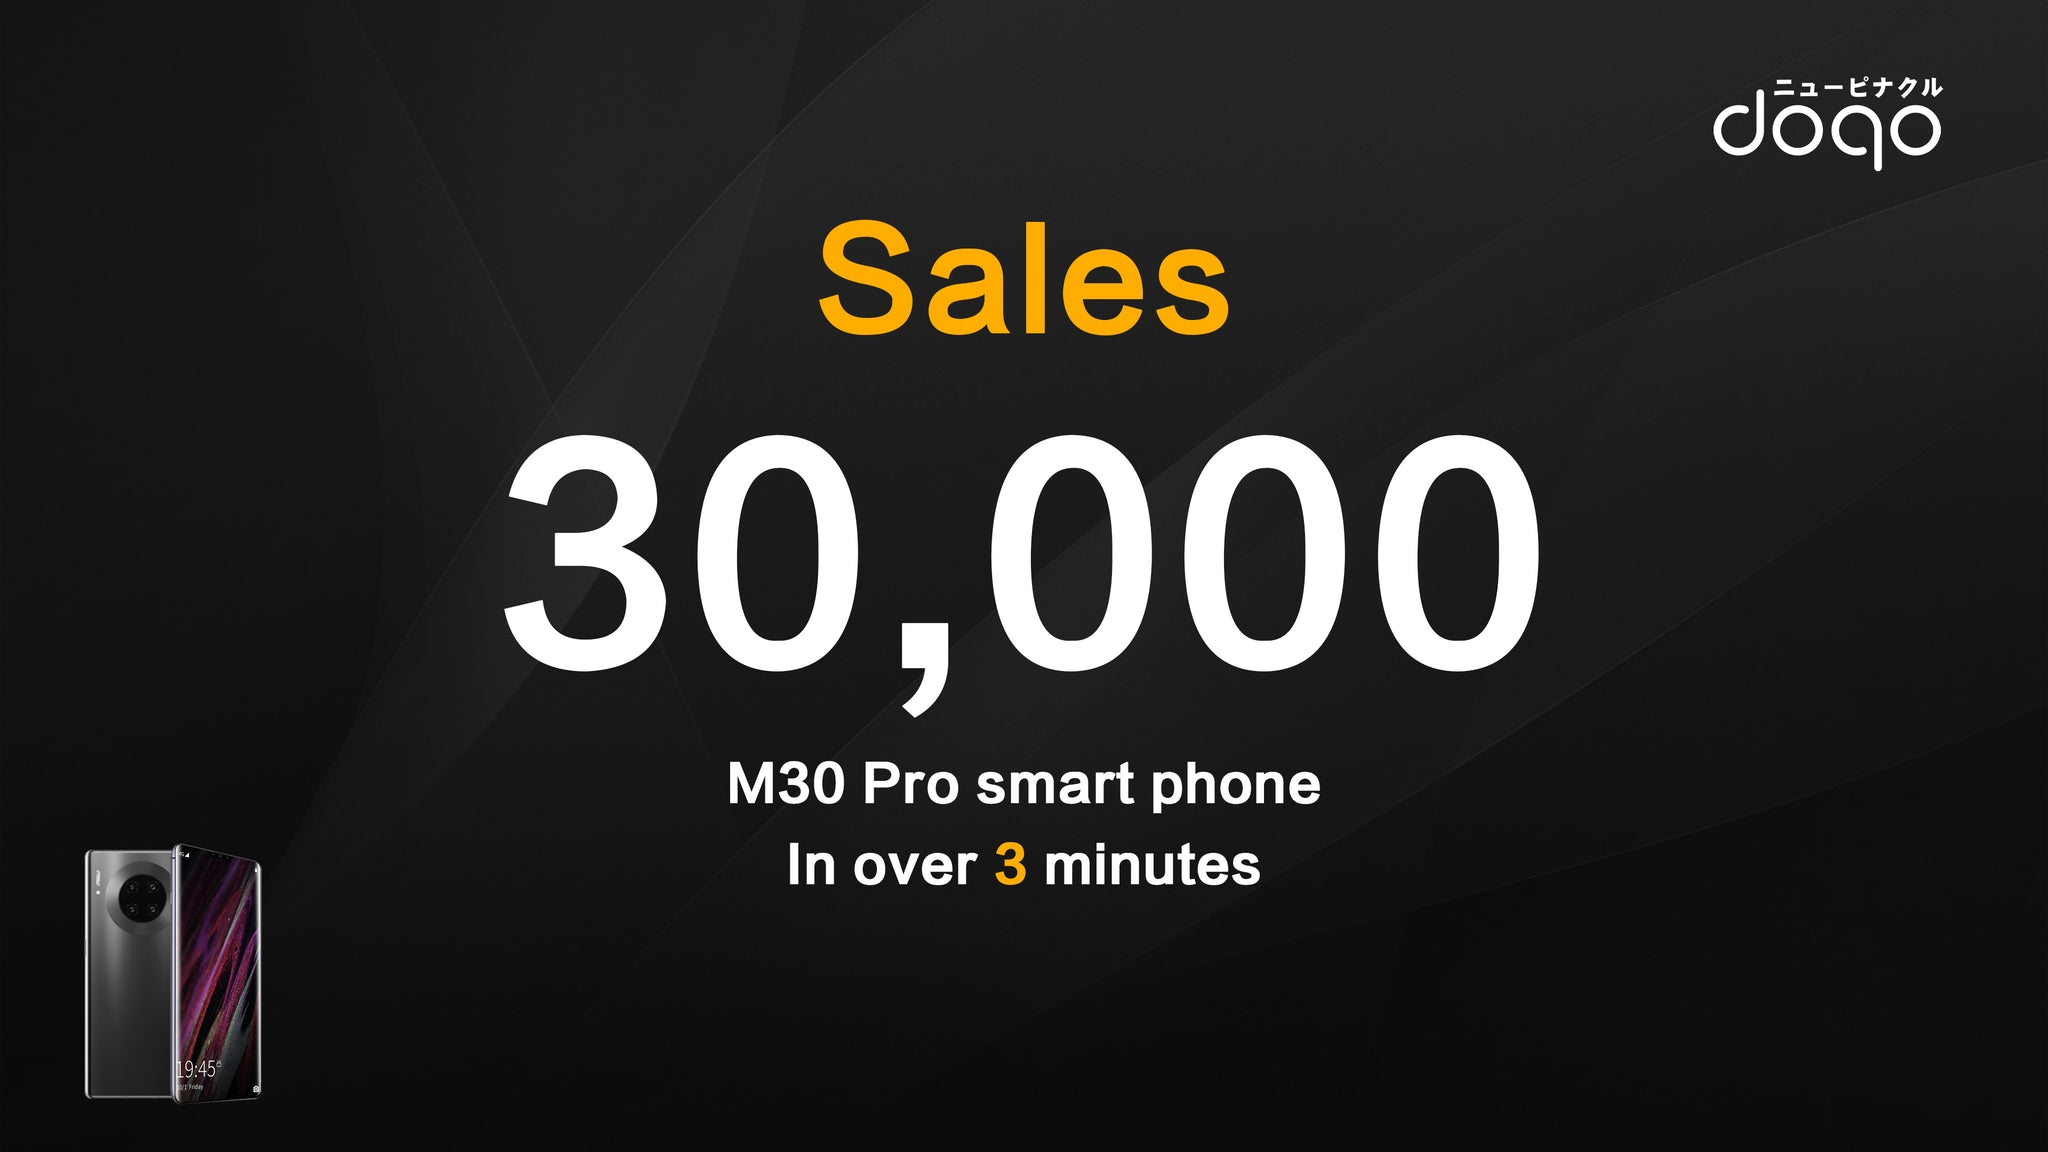 Doqo mobile phone has been sold at least 30,000 in 1 minute